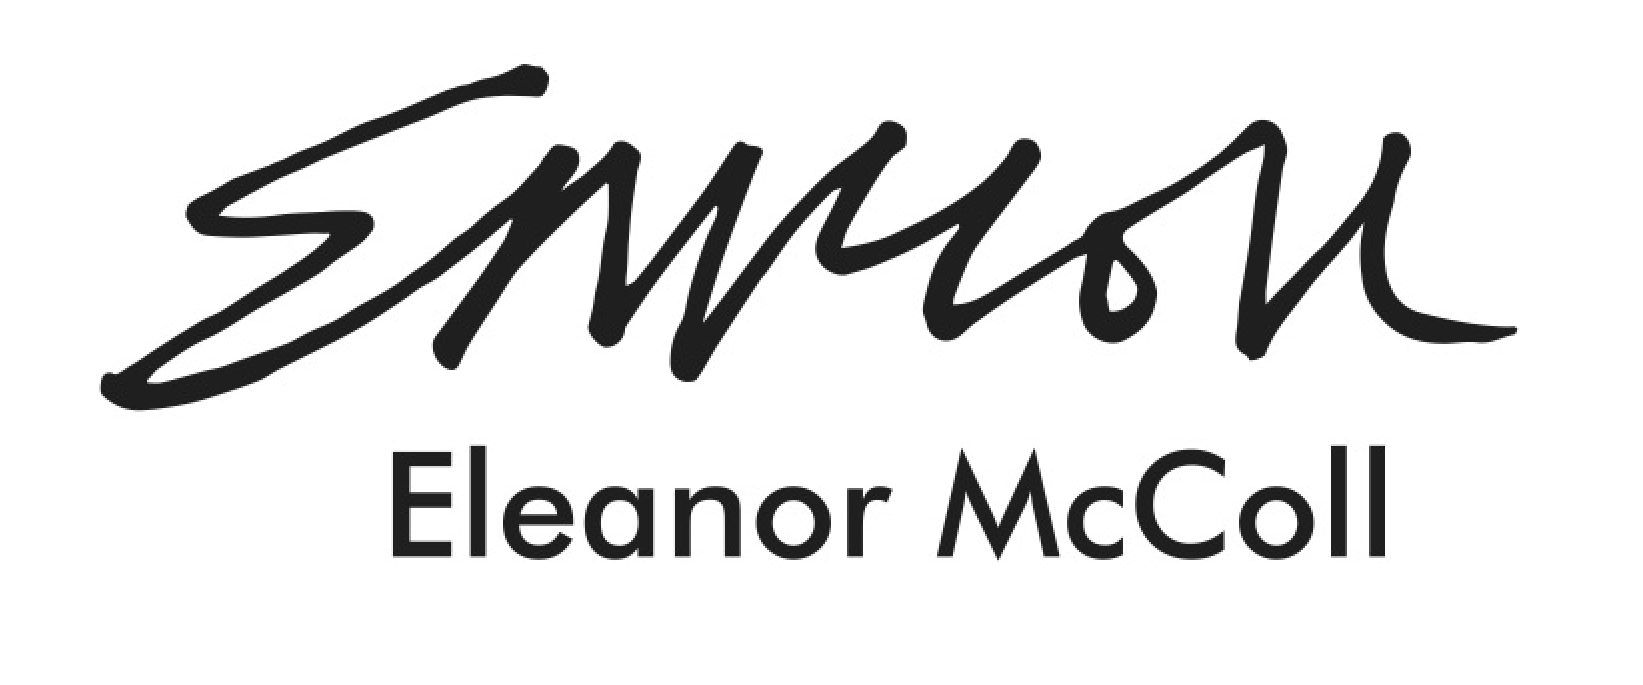 Eleanor McColl artisit_logo-01.png